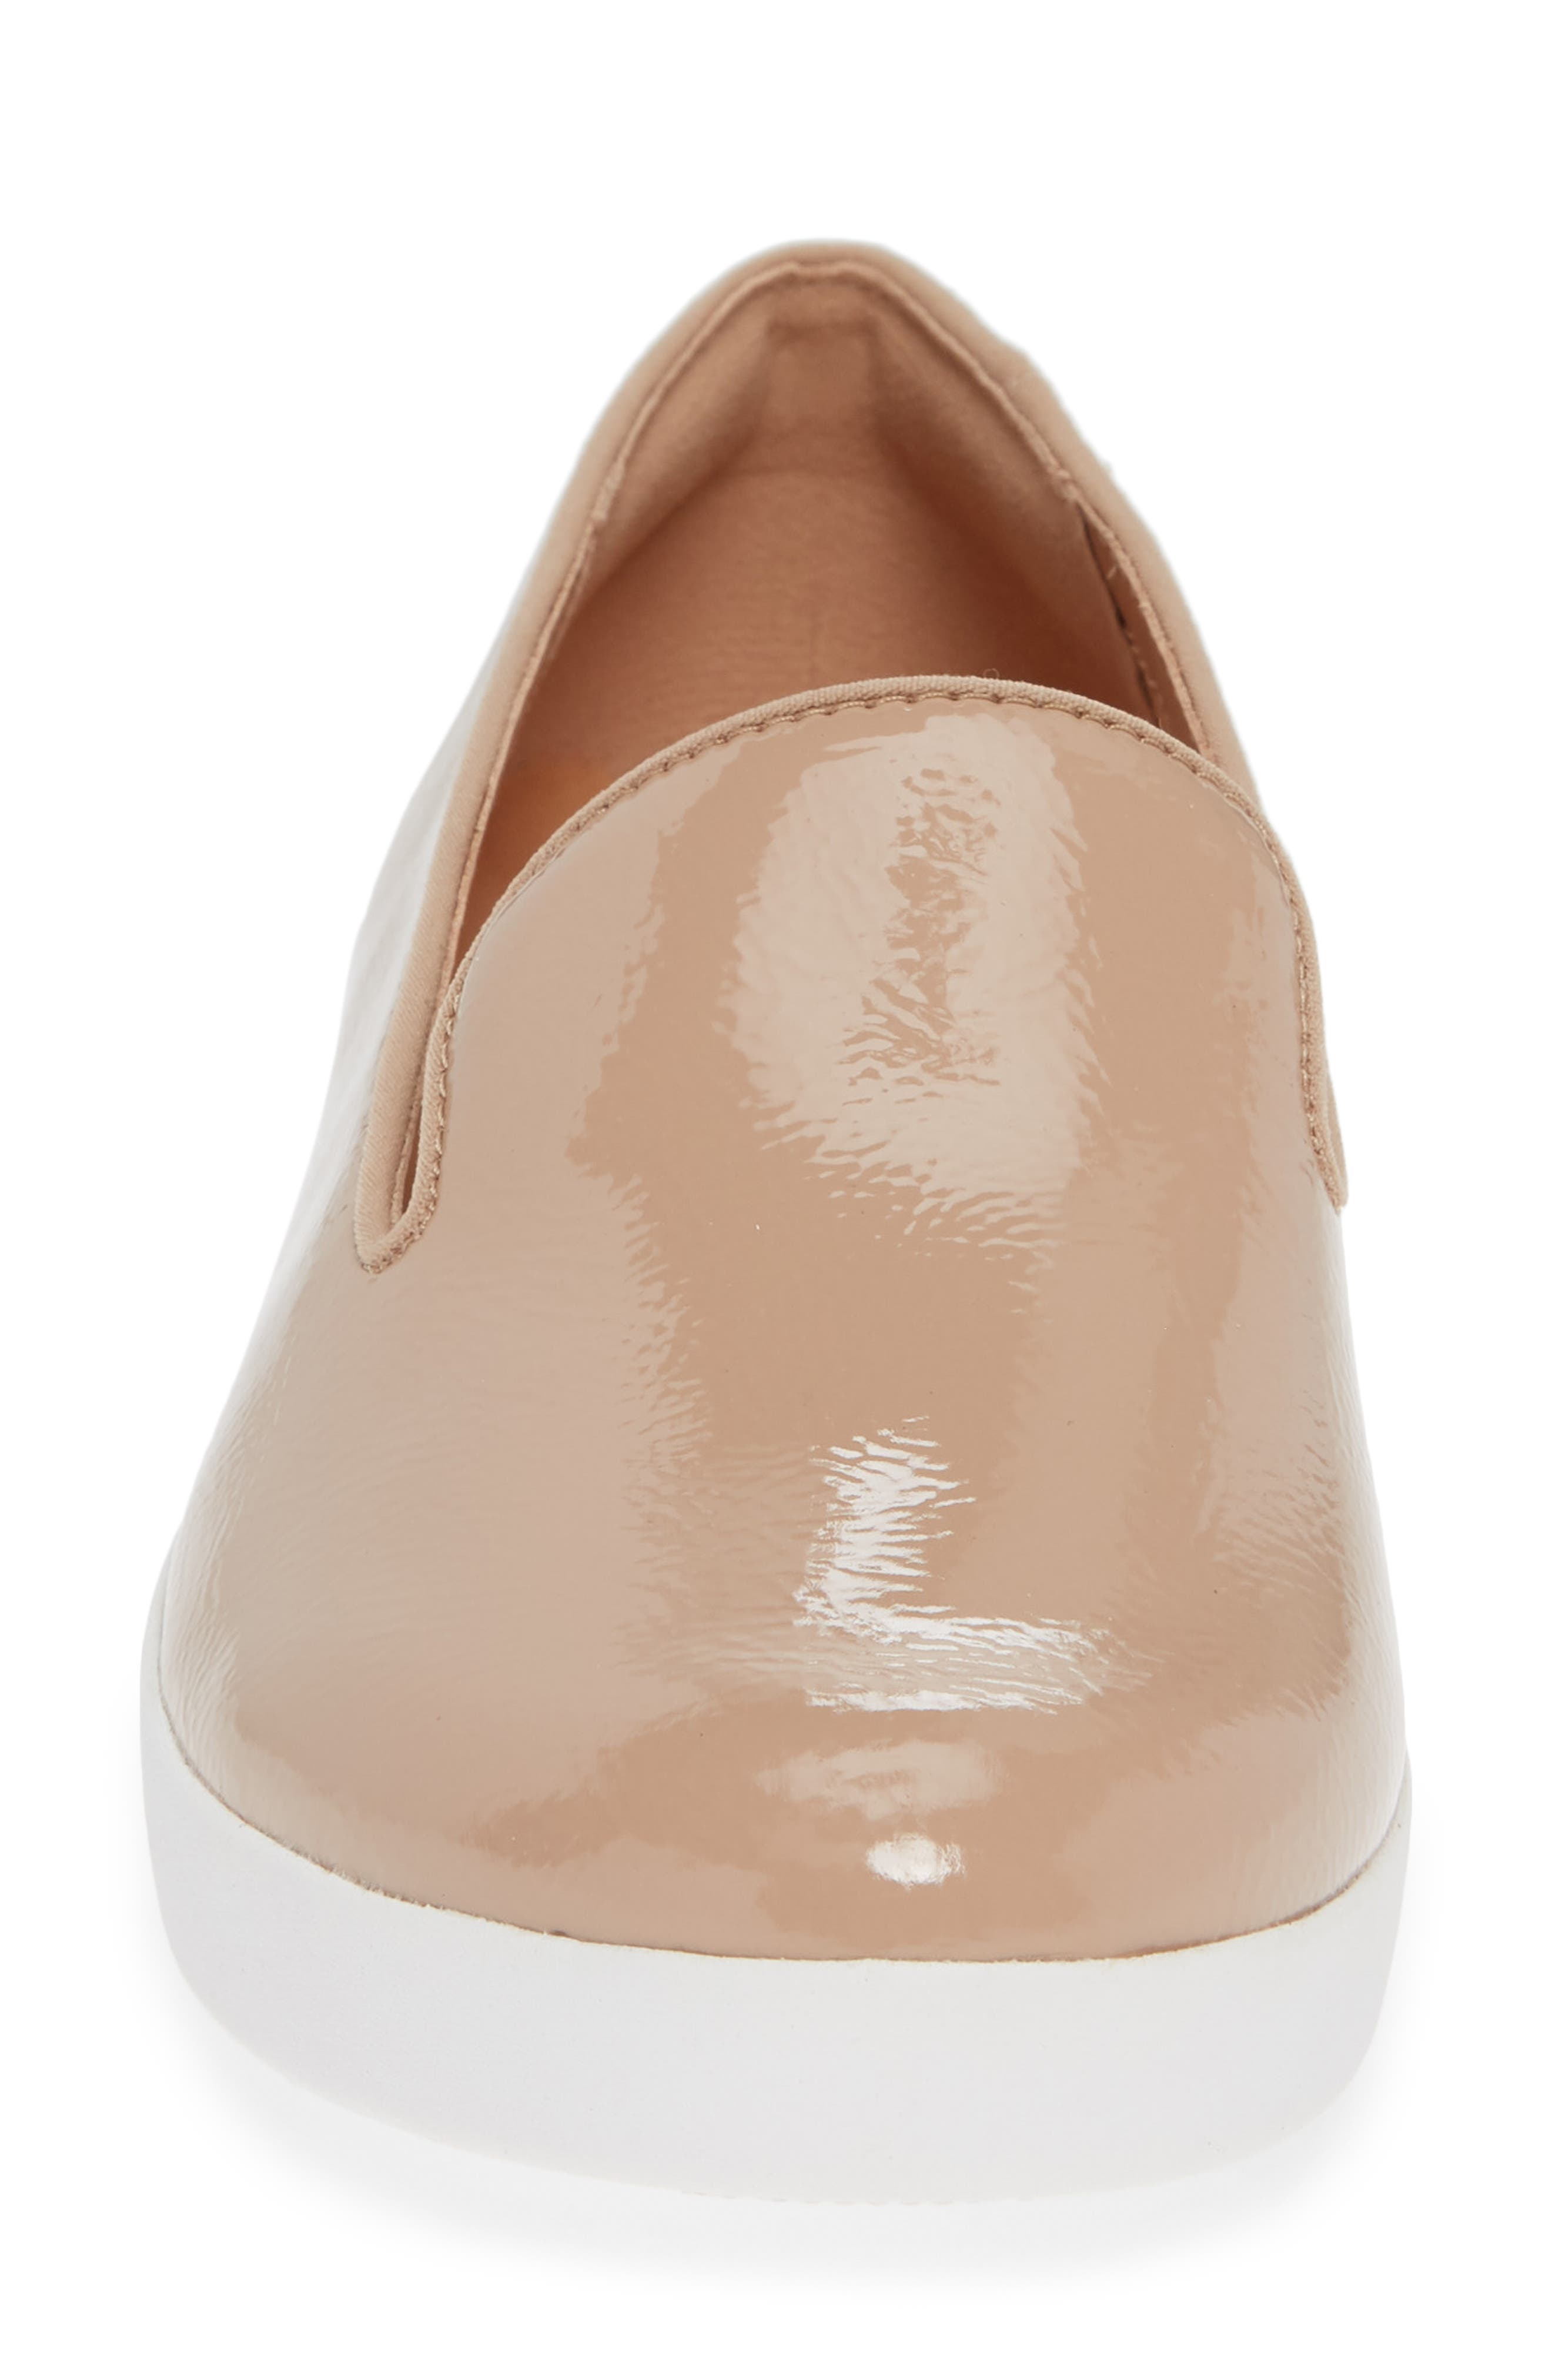 Audrey Smoking Slipper,                             Alternate thumbnail 4, color,                             TAUPE PATENT LEATHER